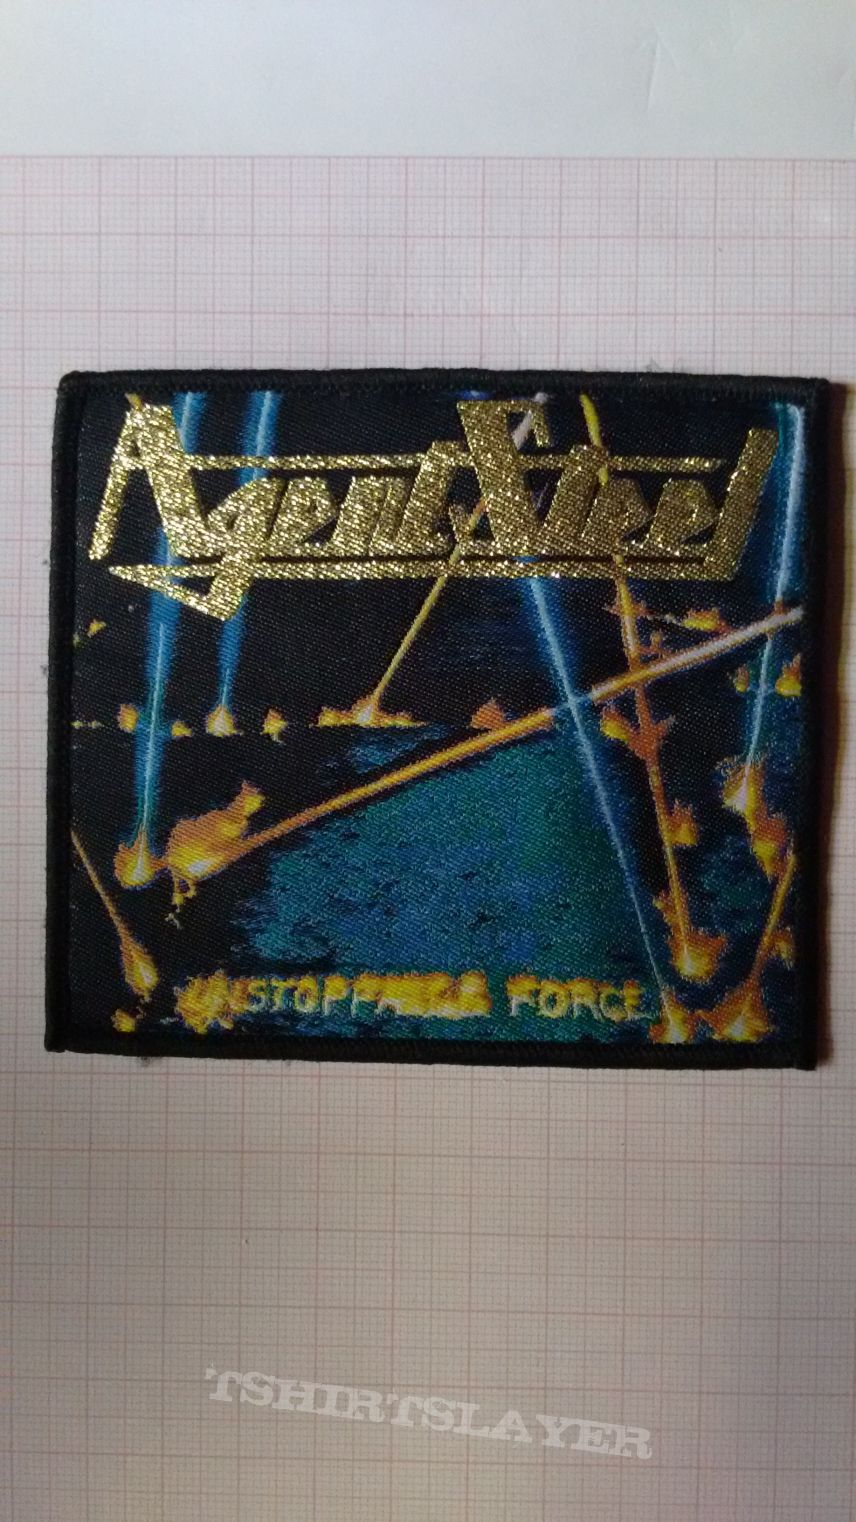 Official Agent Steel Unstoppable Force woven patch